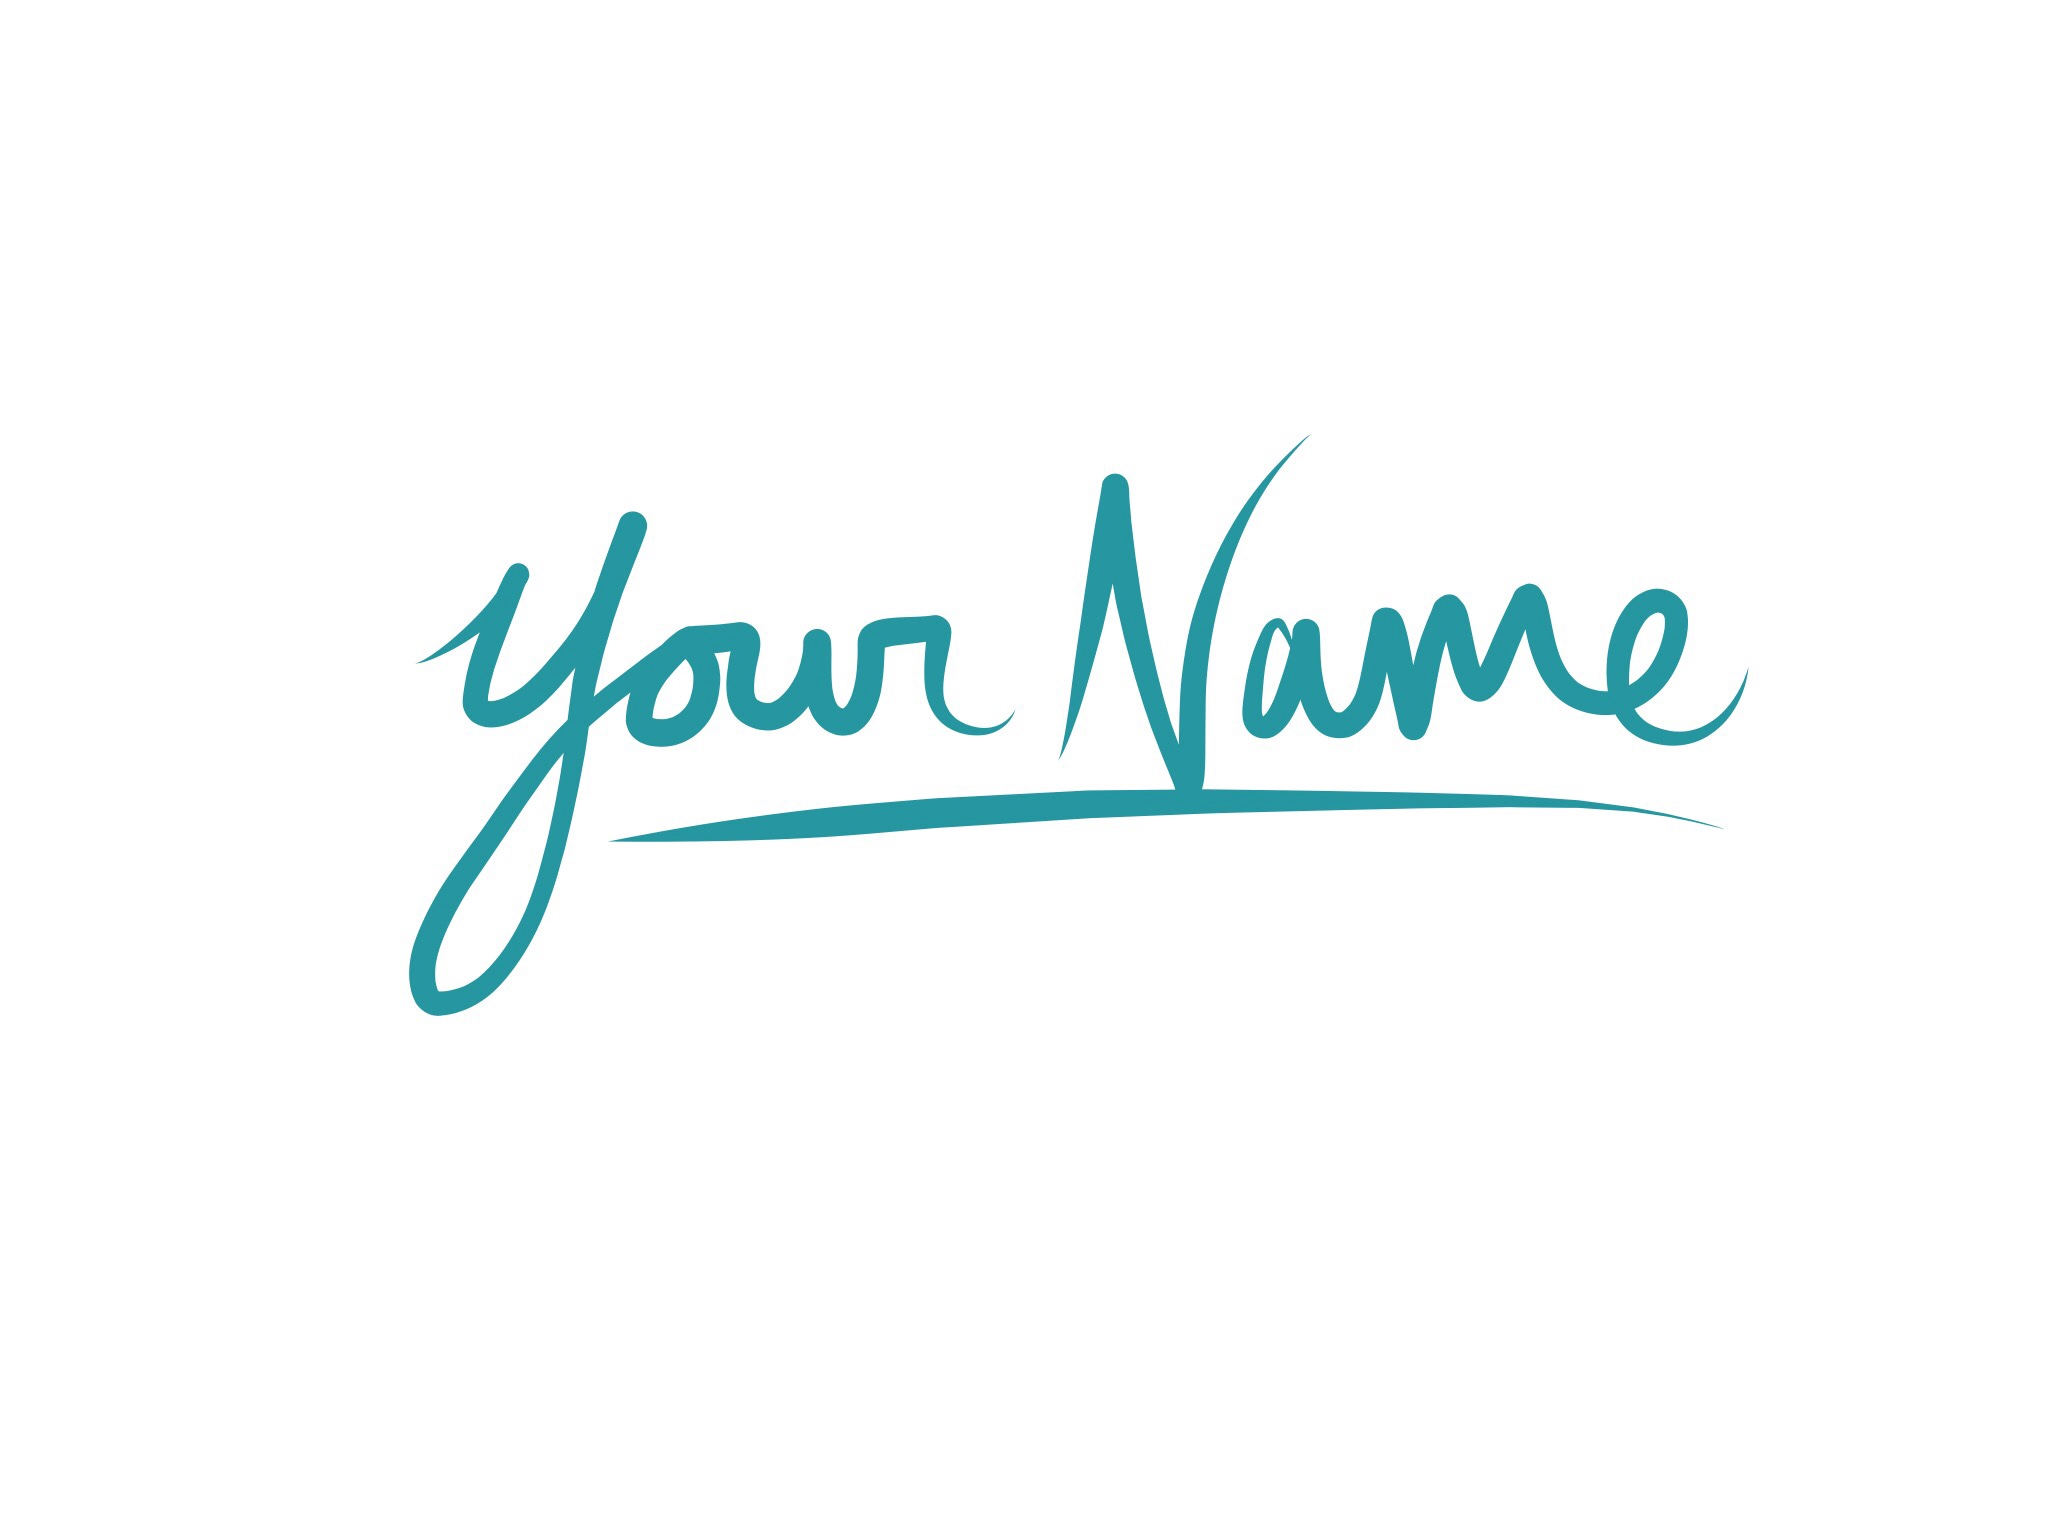 Design my logo name 28 images image gallery logo for Draw your own logo